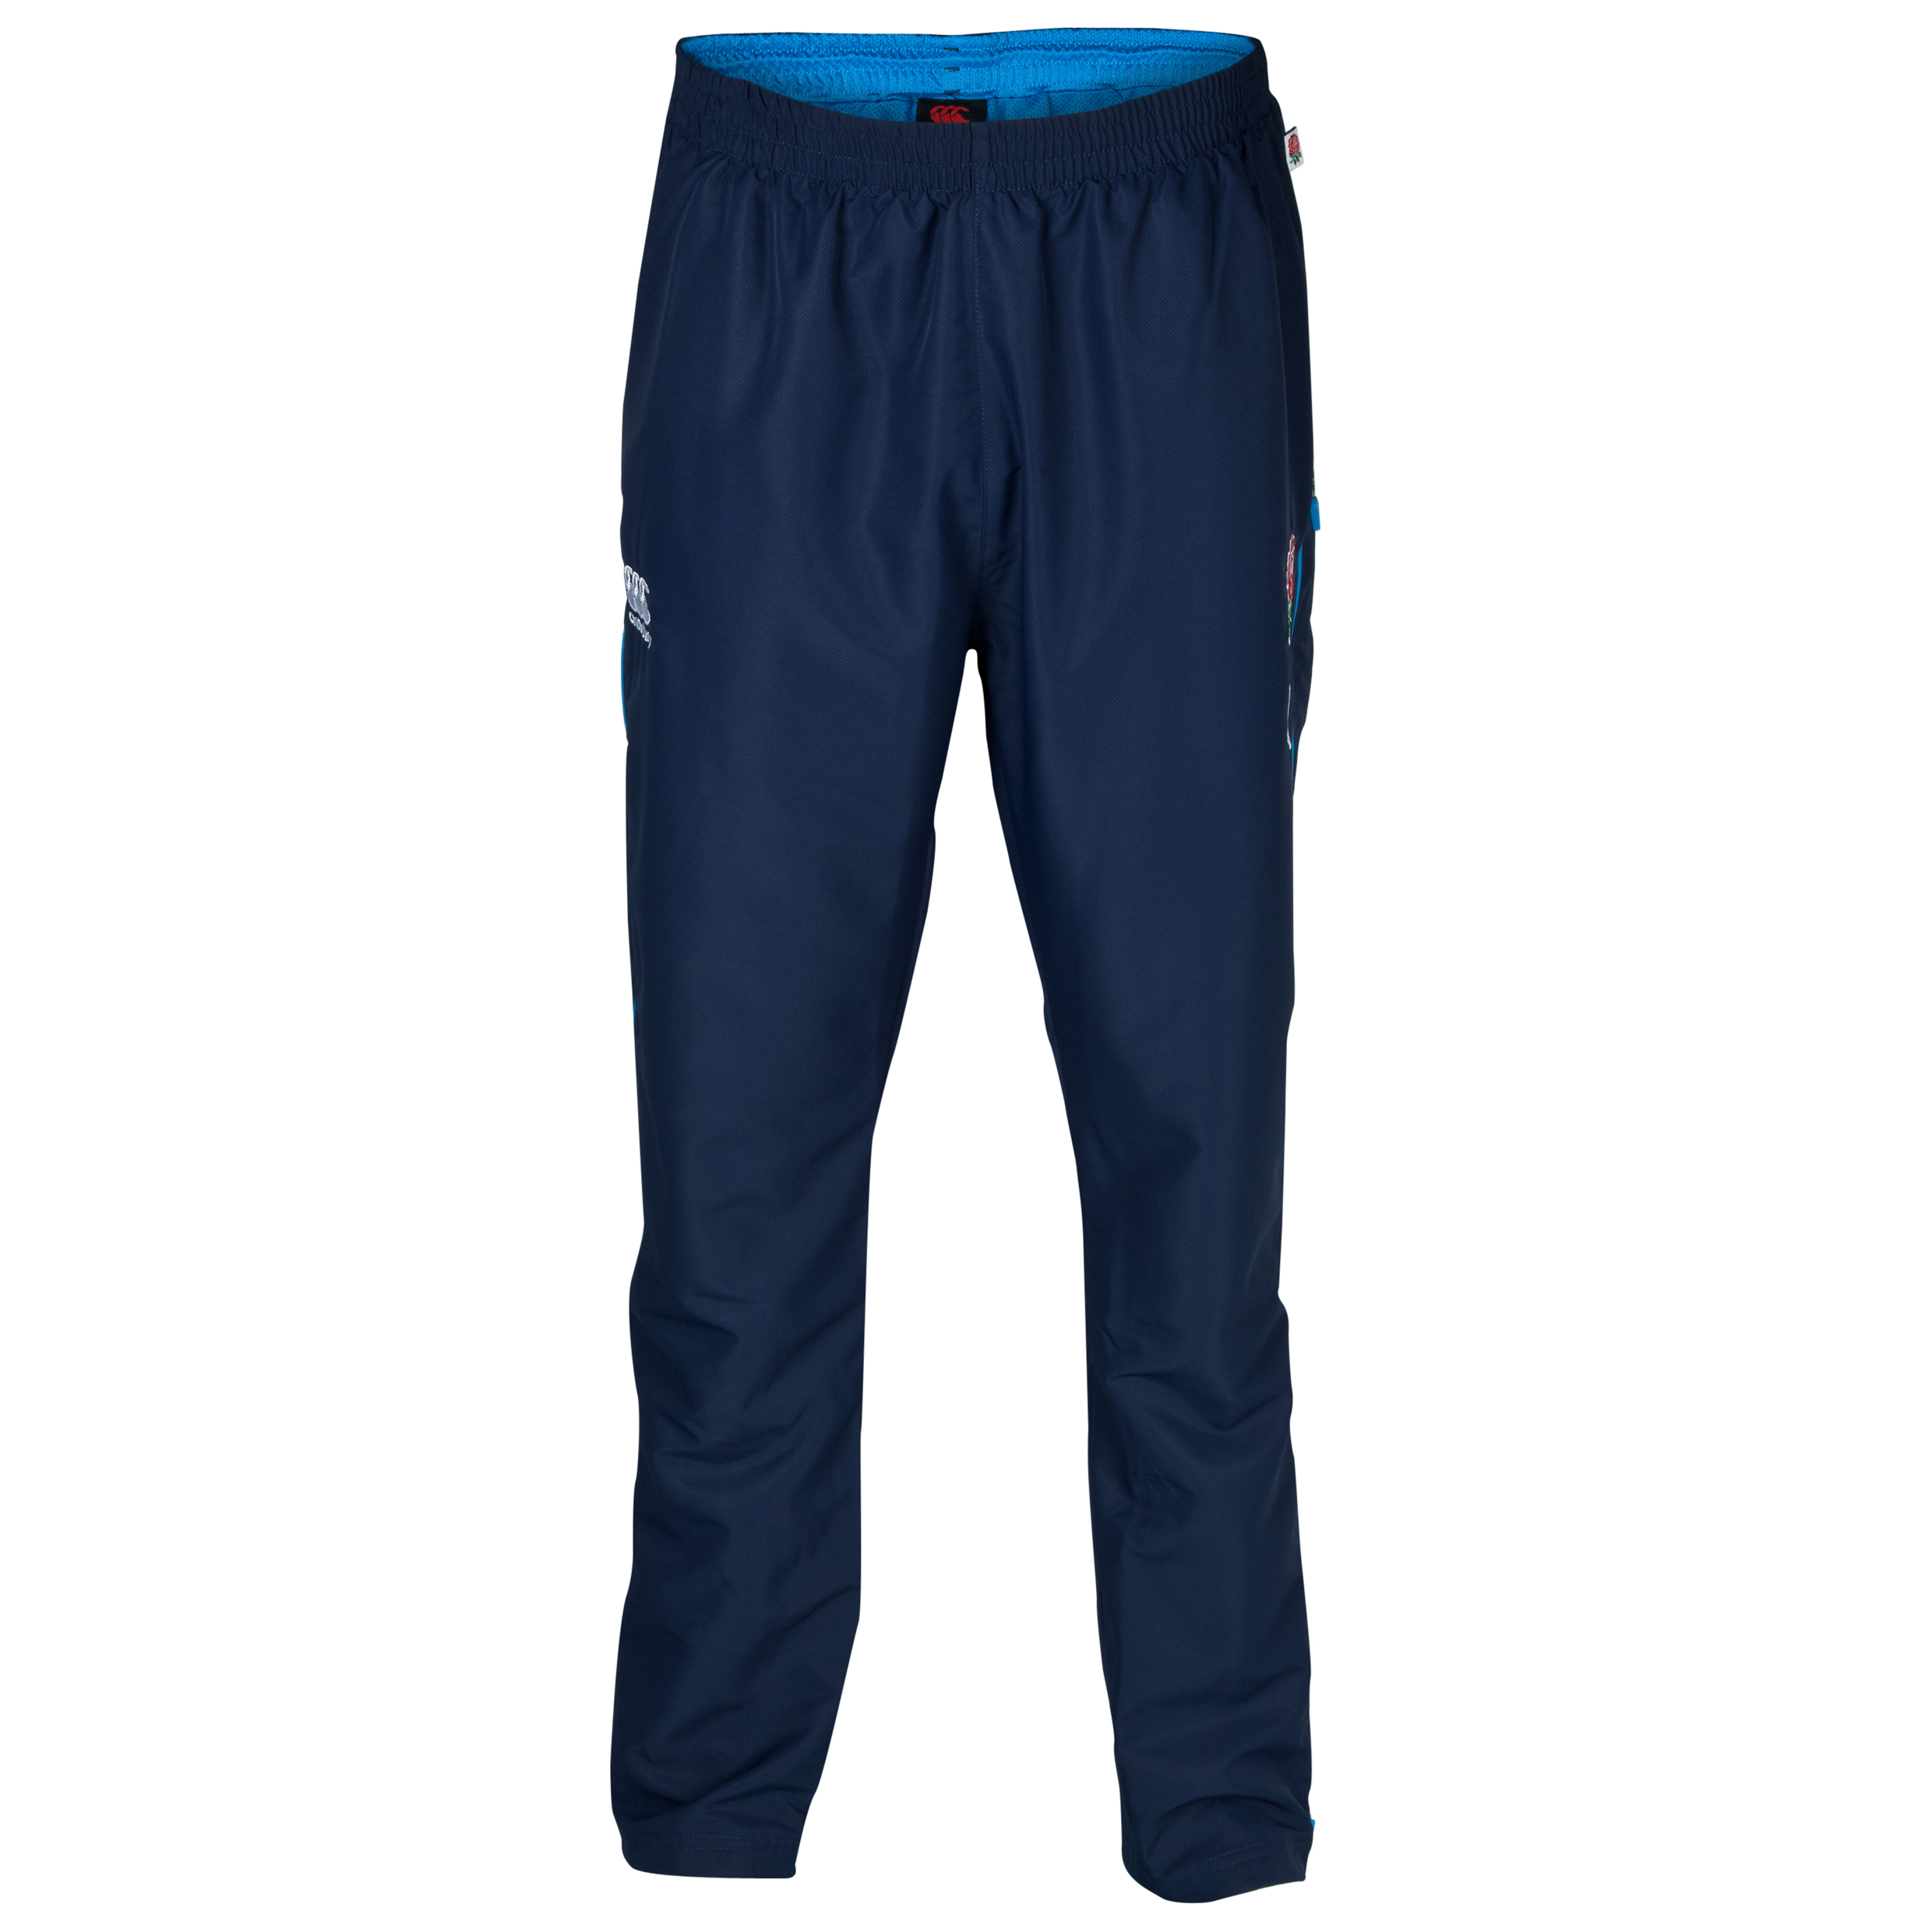 England Supporters Presentation Pant - Peacoat Navy